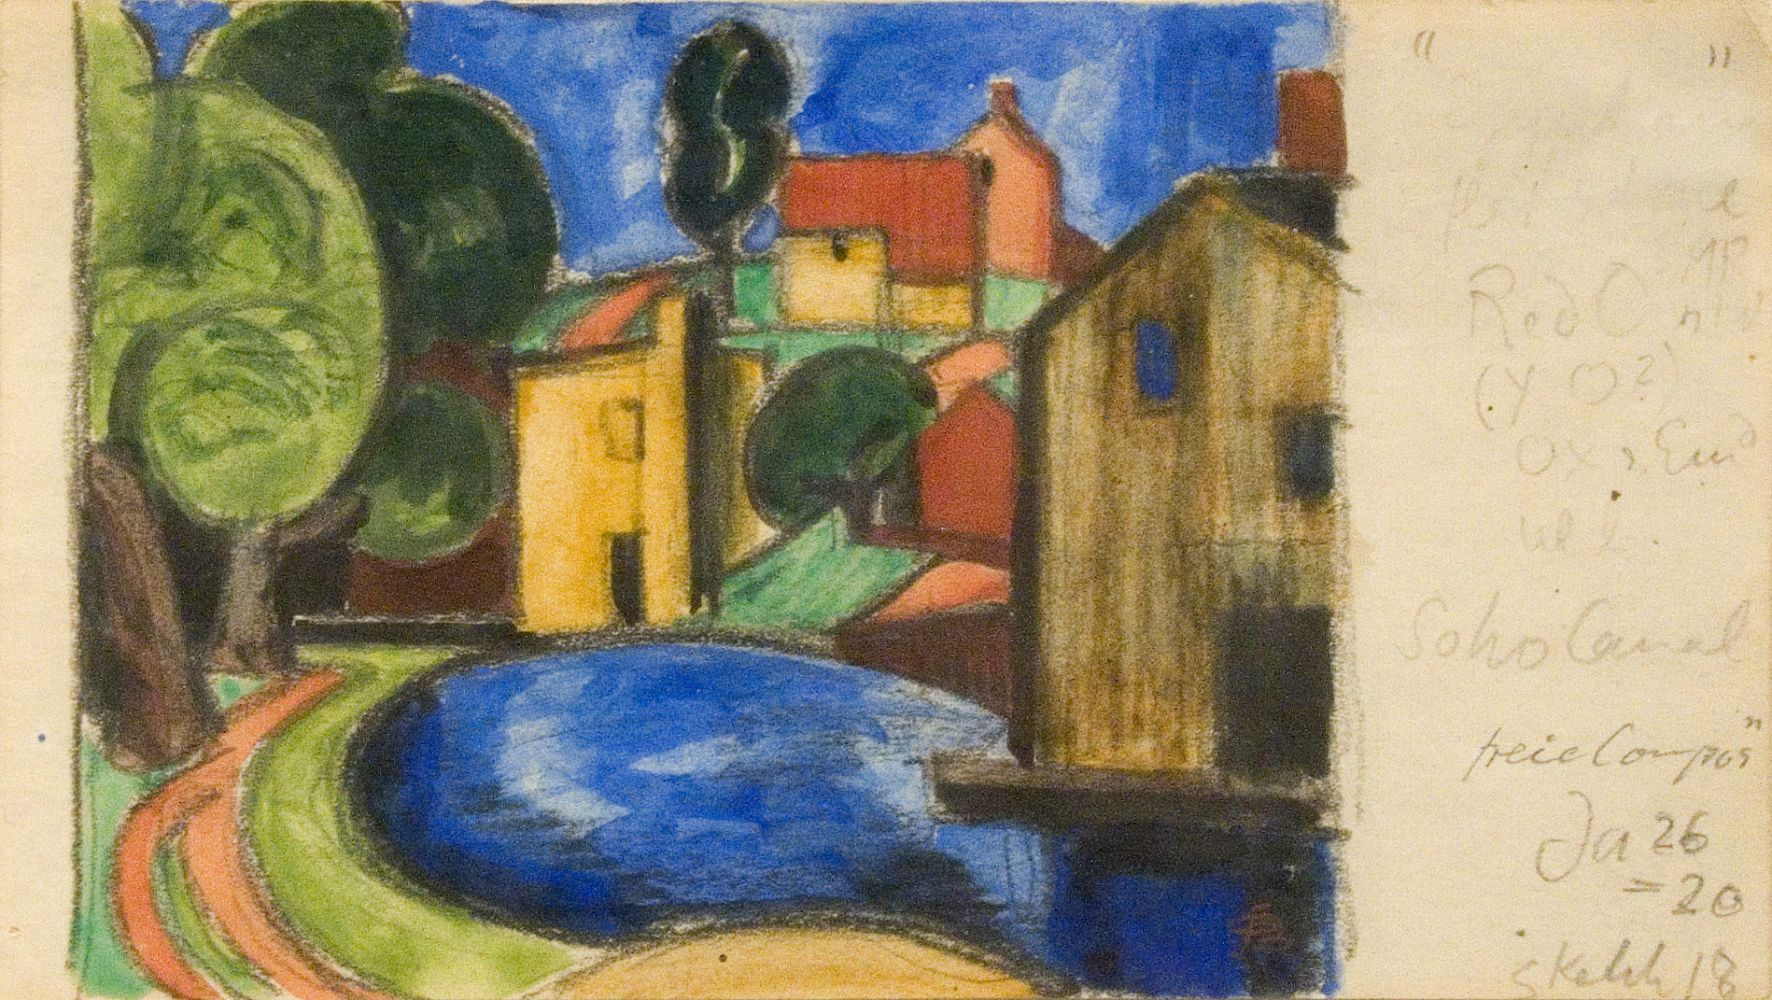 Oscar Bluemner, Soho Canal, 1920, watercolor and pencil on paper, 3 1/8 x 5 3/4 inches